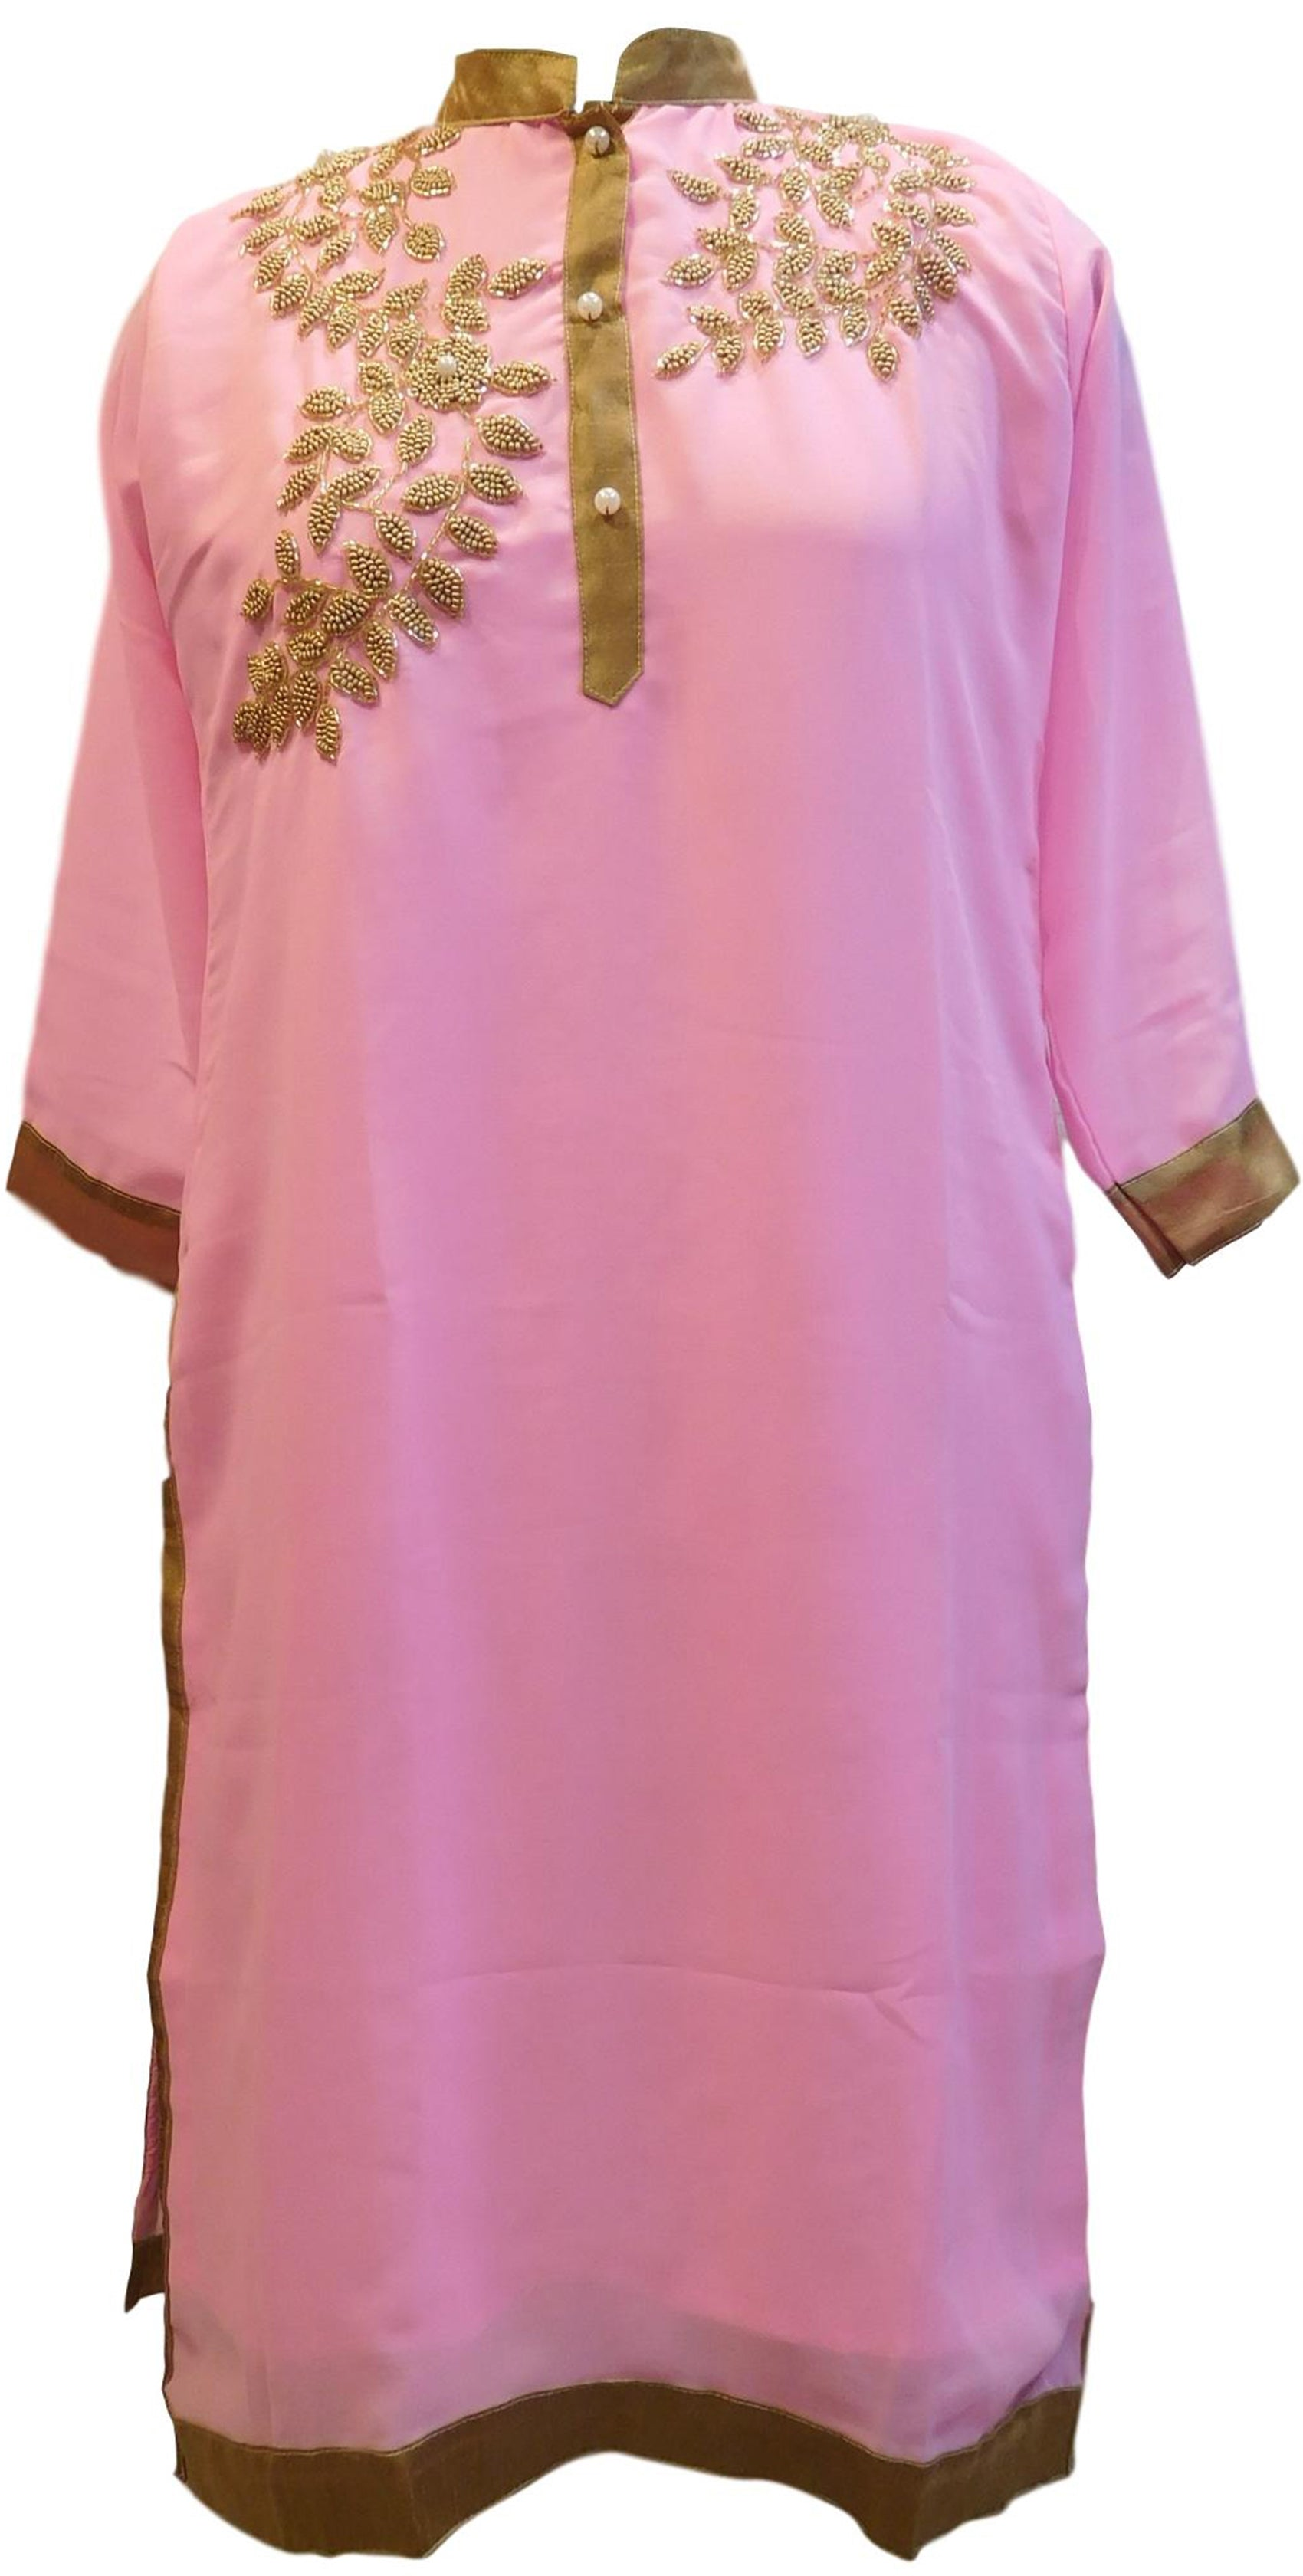 Baby Pink Designer Georgette Hand Embroidery Cutdana Beads Pearl Work Kurti Kurta D310